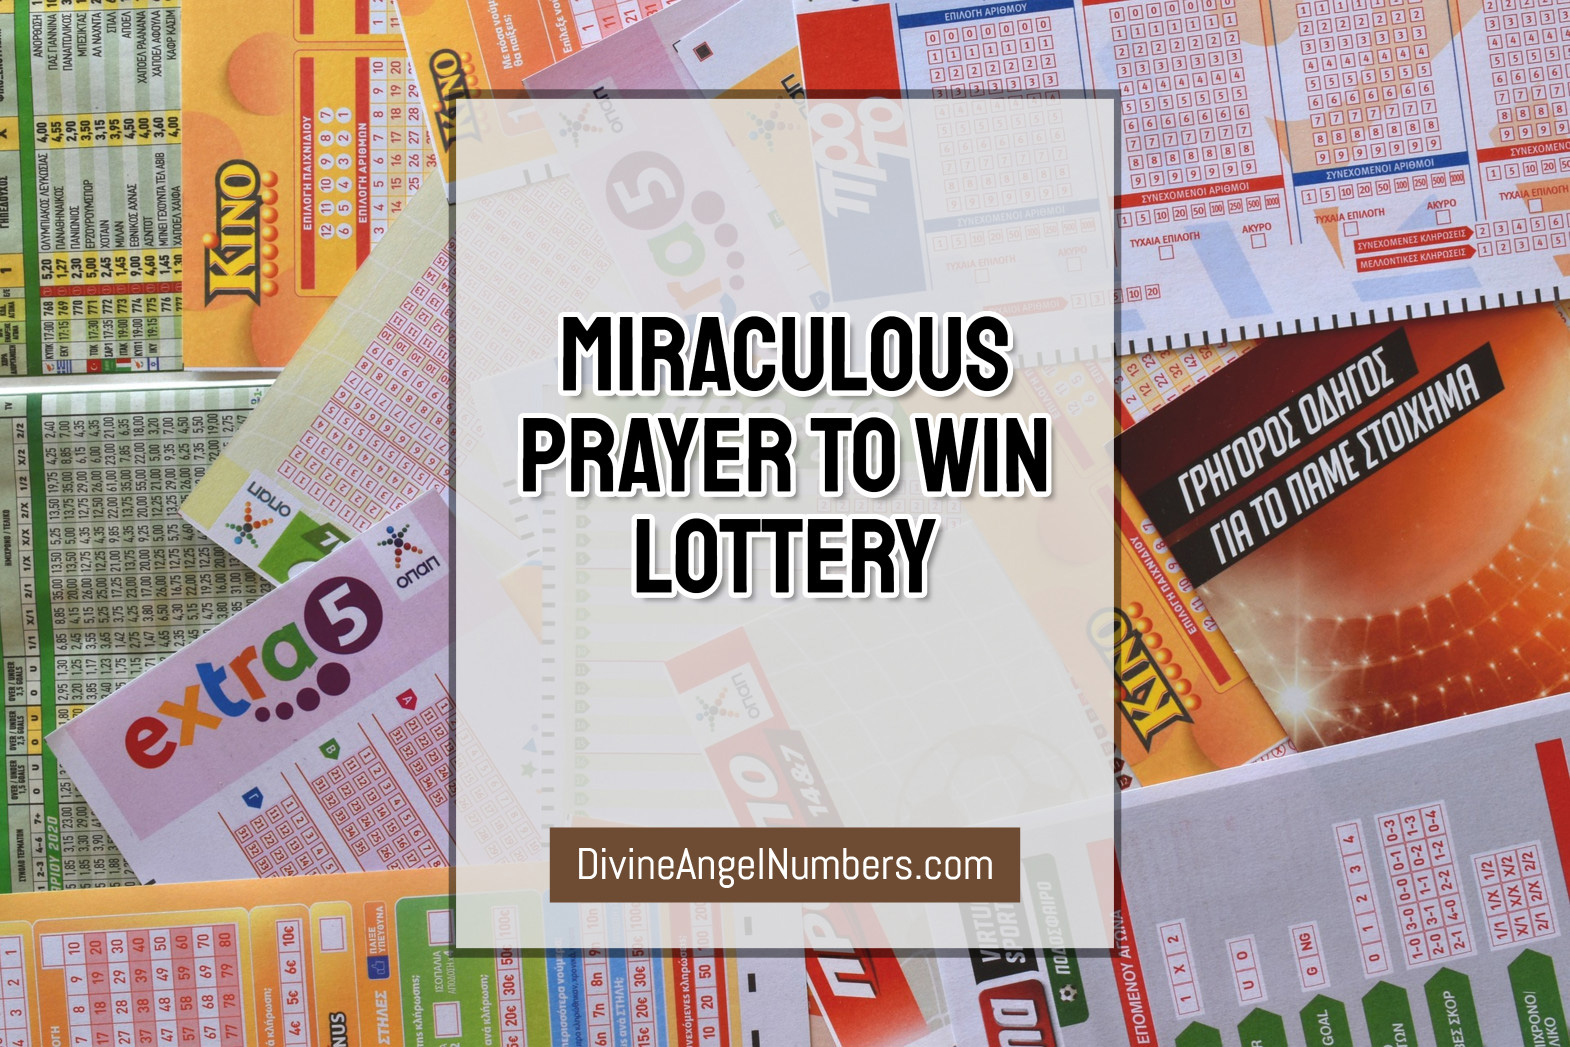 Miraculous Prayer To Win Lottery